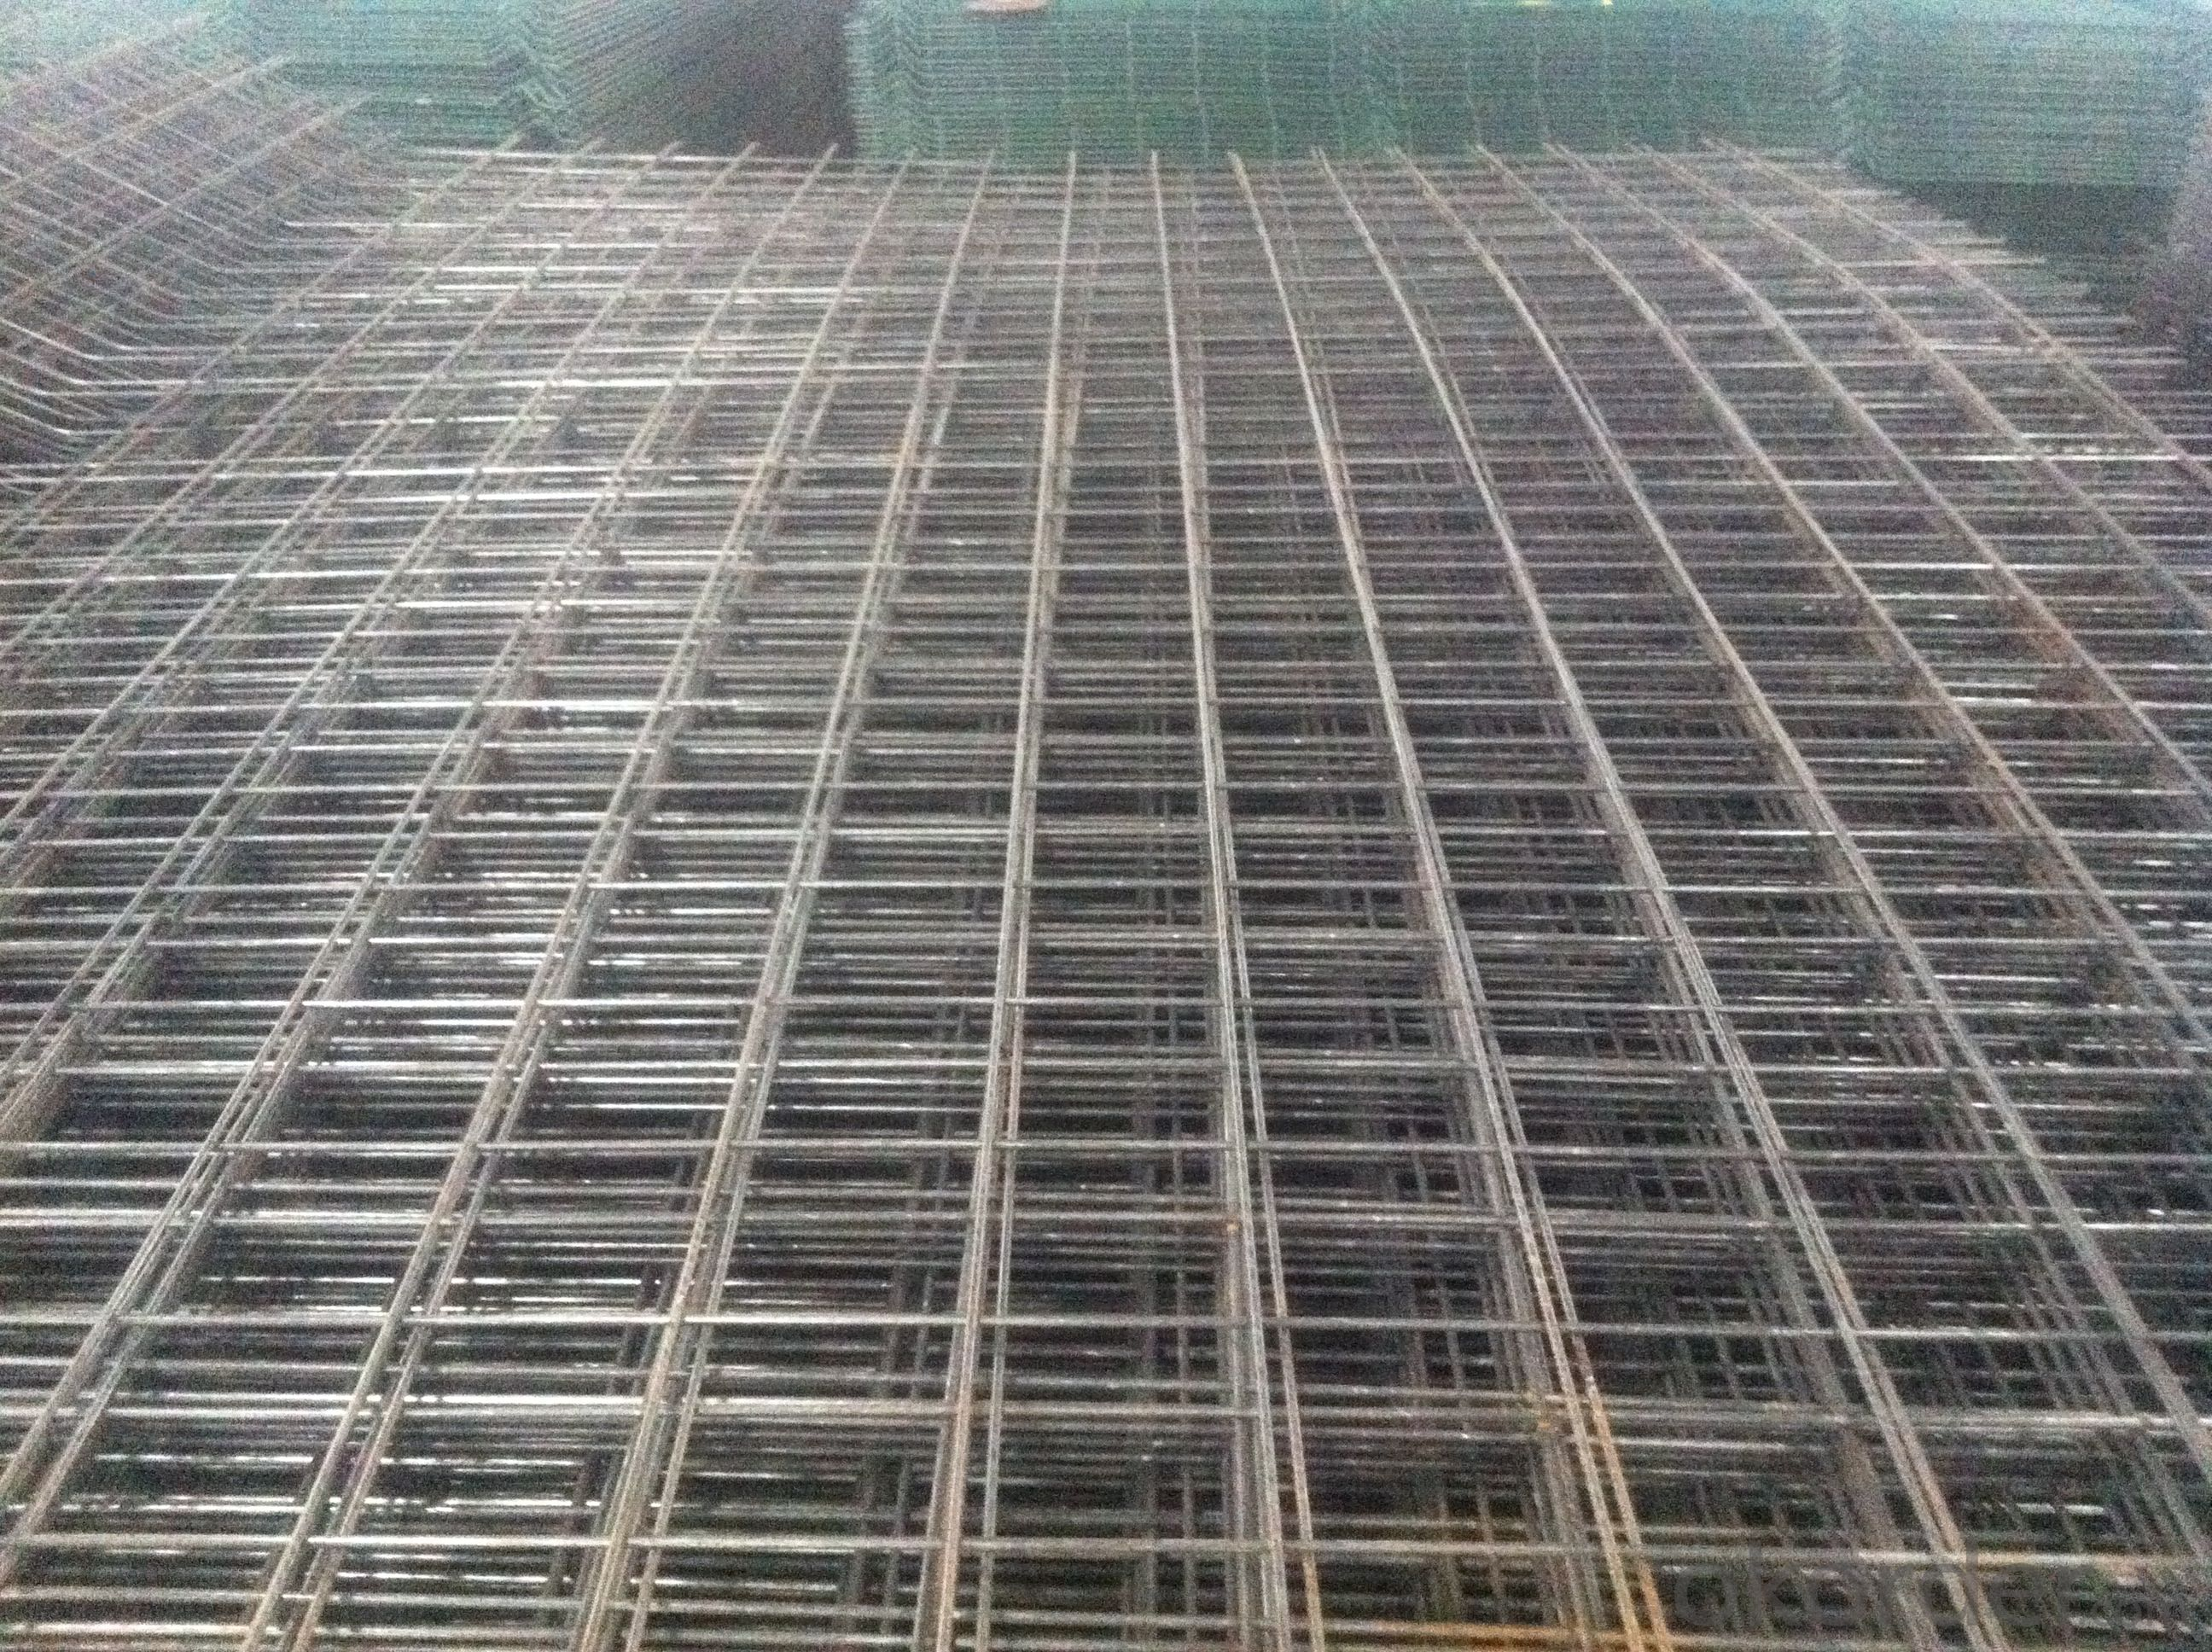 Buy Welded Wire Mesh Electro Price,Size,Weight,Model,Width -Okorder.com